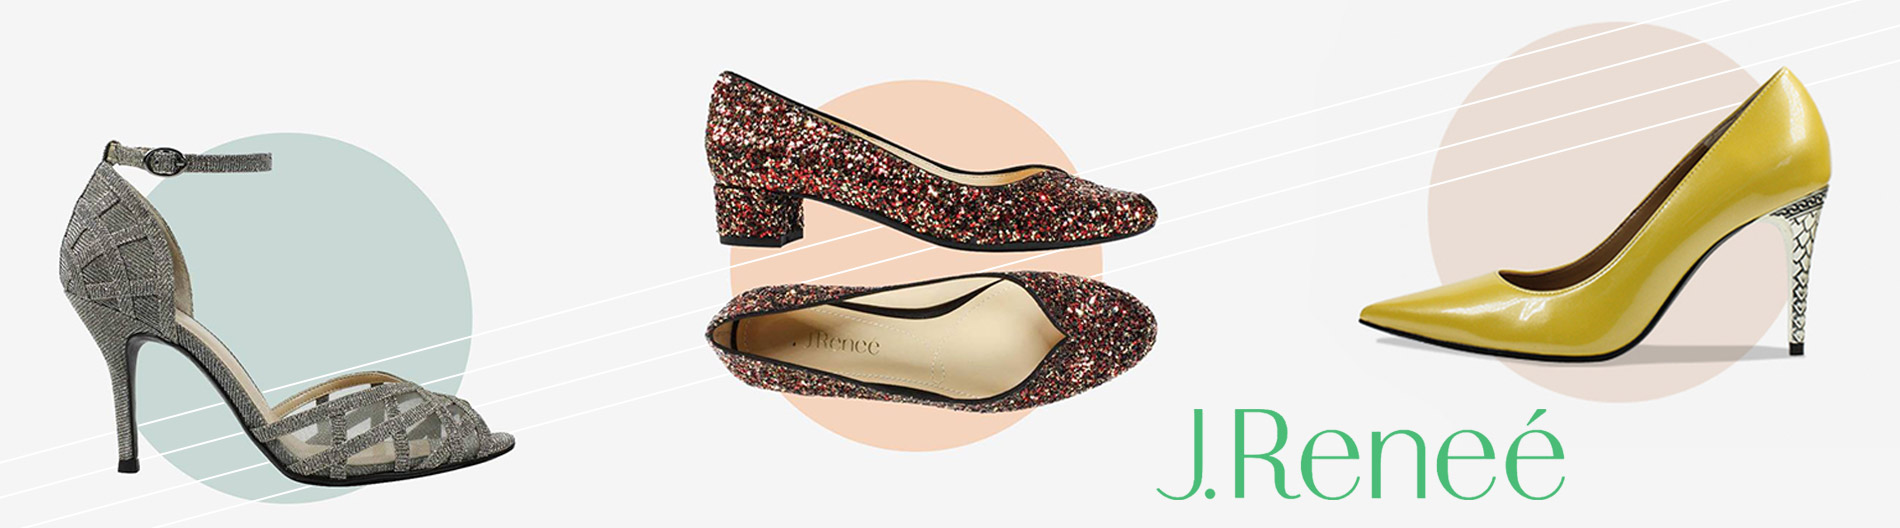 J Renee shoes online